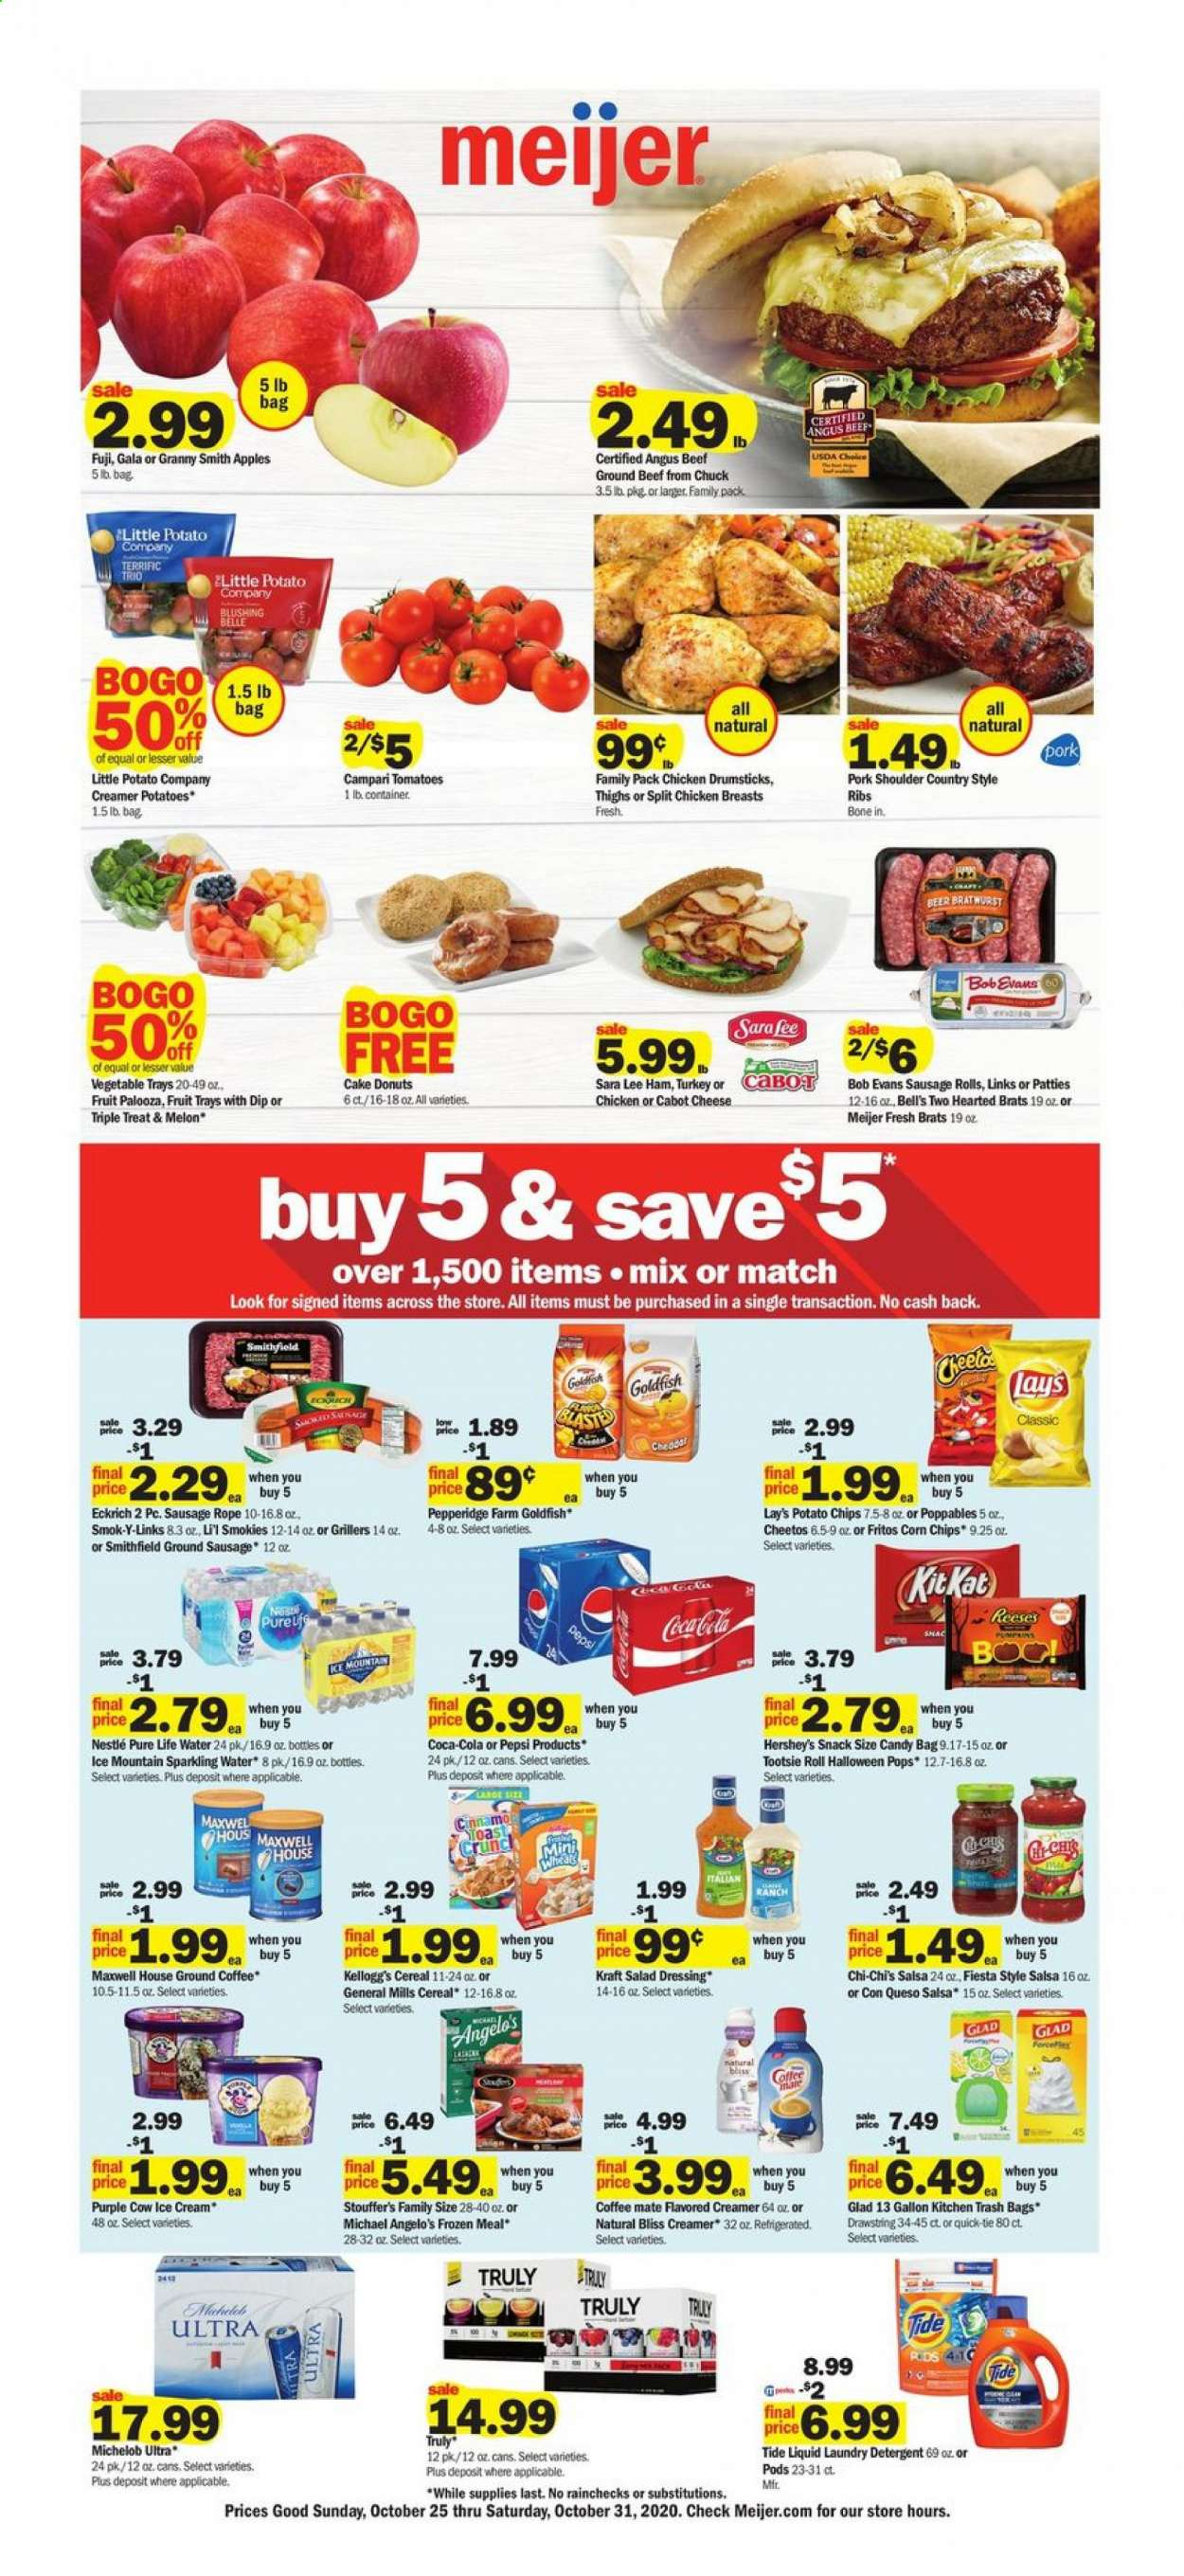 Meijer Flyer - 10.25.2020 - 10.31.2020 - Sales products - apples, beef meat, beer, bratwurst, cereals, coca-cola, coffee, detergent, Fritos, frozen, ground beef, Maxwell House, Nestlé, rice, salad dressing, sausage, Tide, tie, tomatoes, turkey, ham, ice cream, Kitchen, pork meat, pork shoulder, potato chips, potatoes, cheddar, cheetos, chicken, chicken breast, Pepsi, chips, cheese, cake, candy, dressing, creamer, snack, sparkling water, salsa, Lee, Lay's, salad, ribs, Fruit, Michelob, KitKat, laundry detergent, Apple, donut, vegetable, trash bags, ground coffee, craft. Page 1.